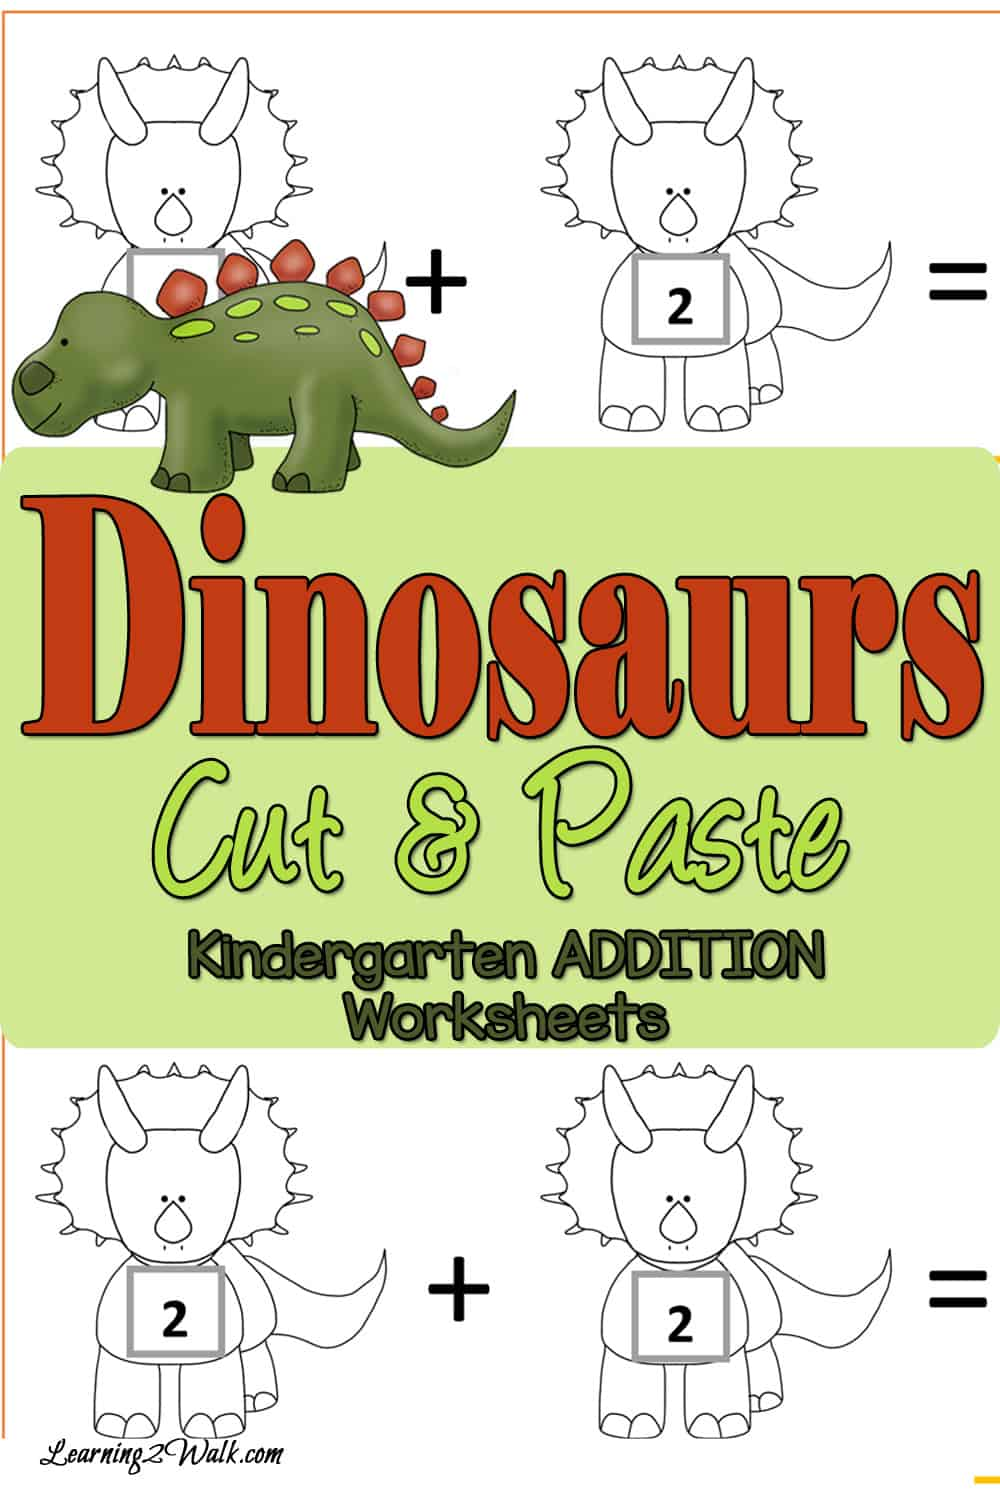 Beach Addition Worksheets for Kindergarten